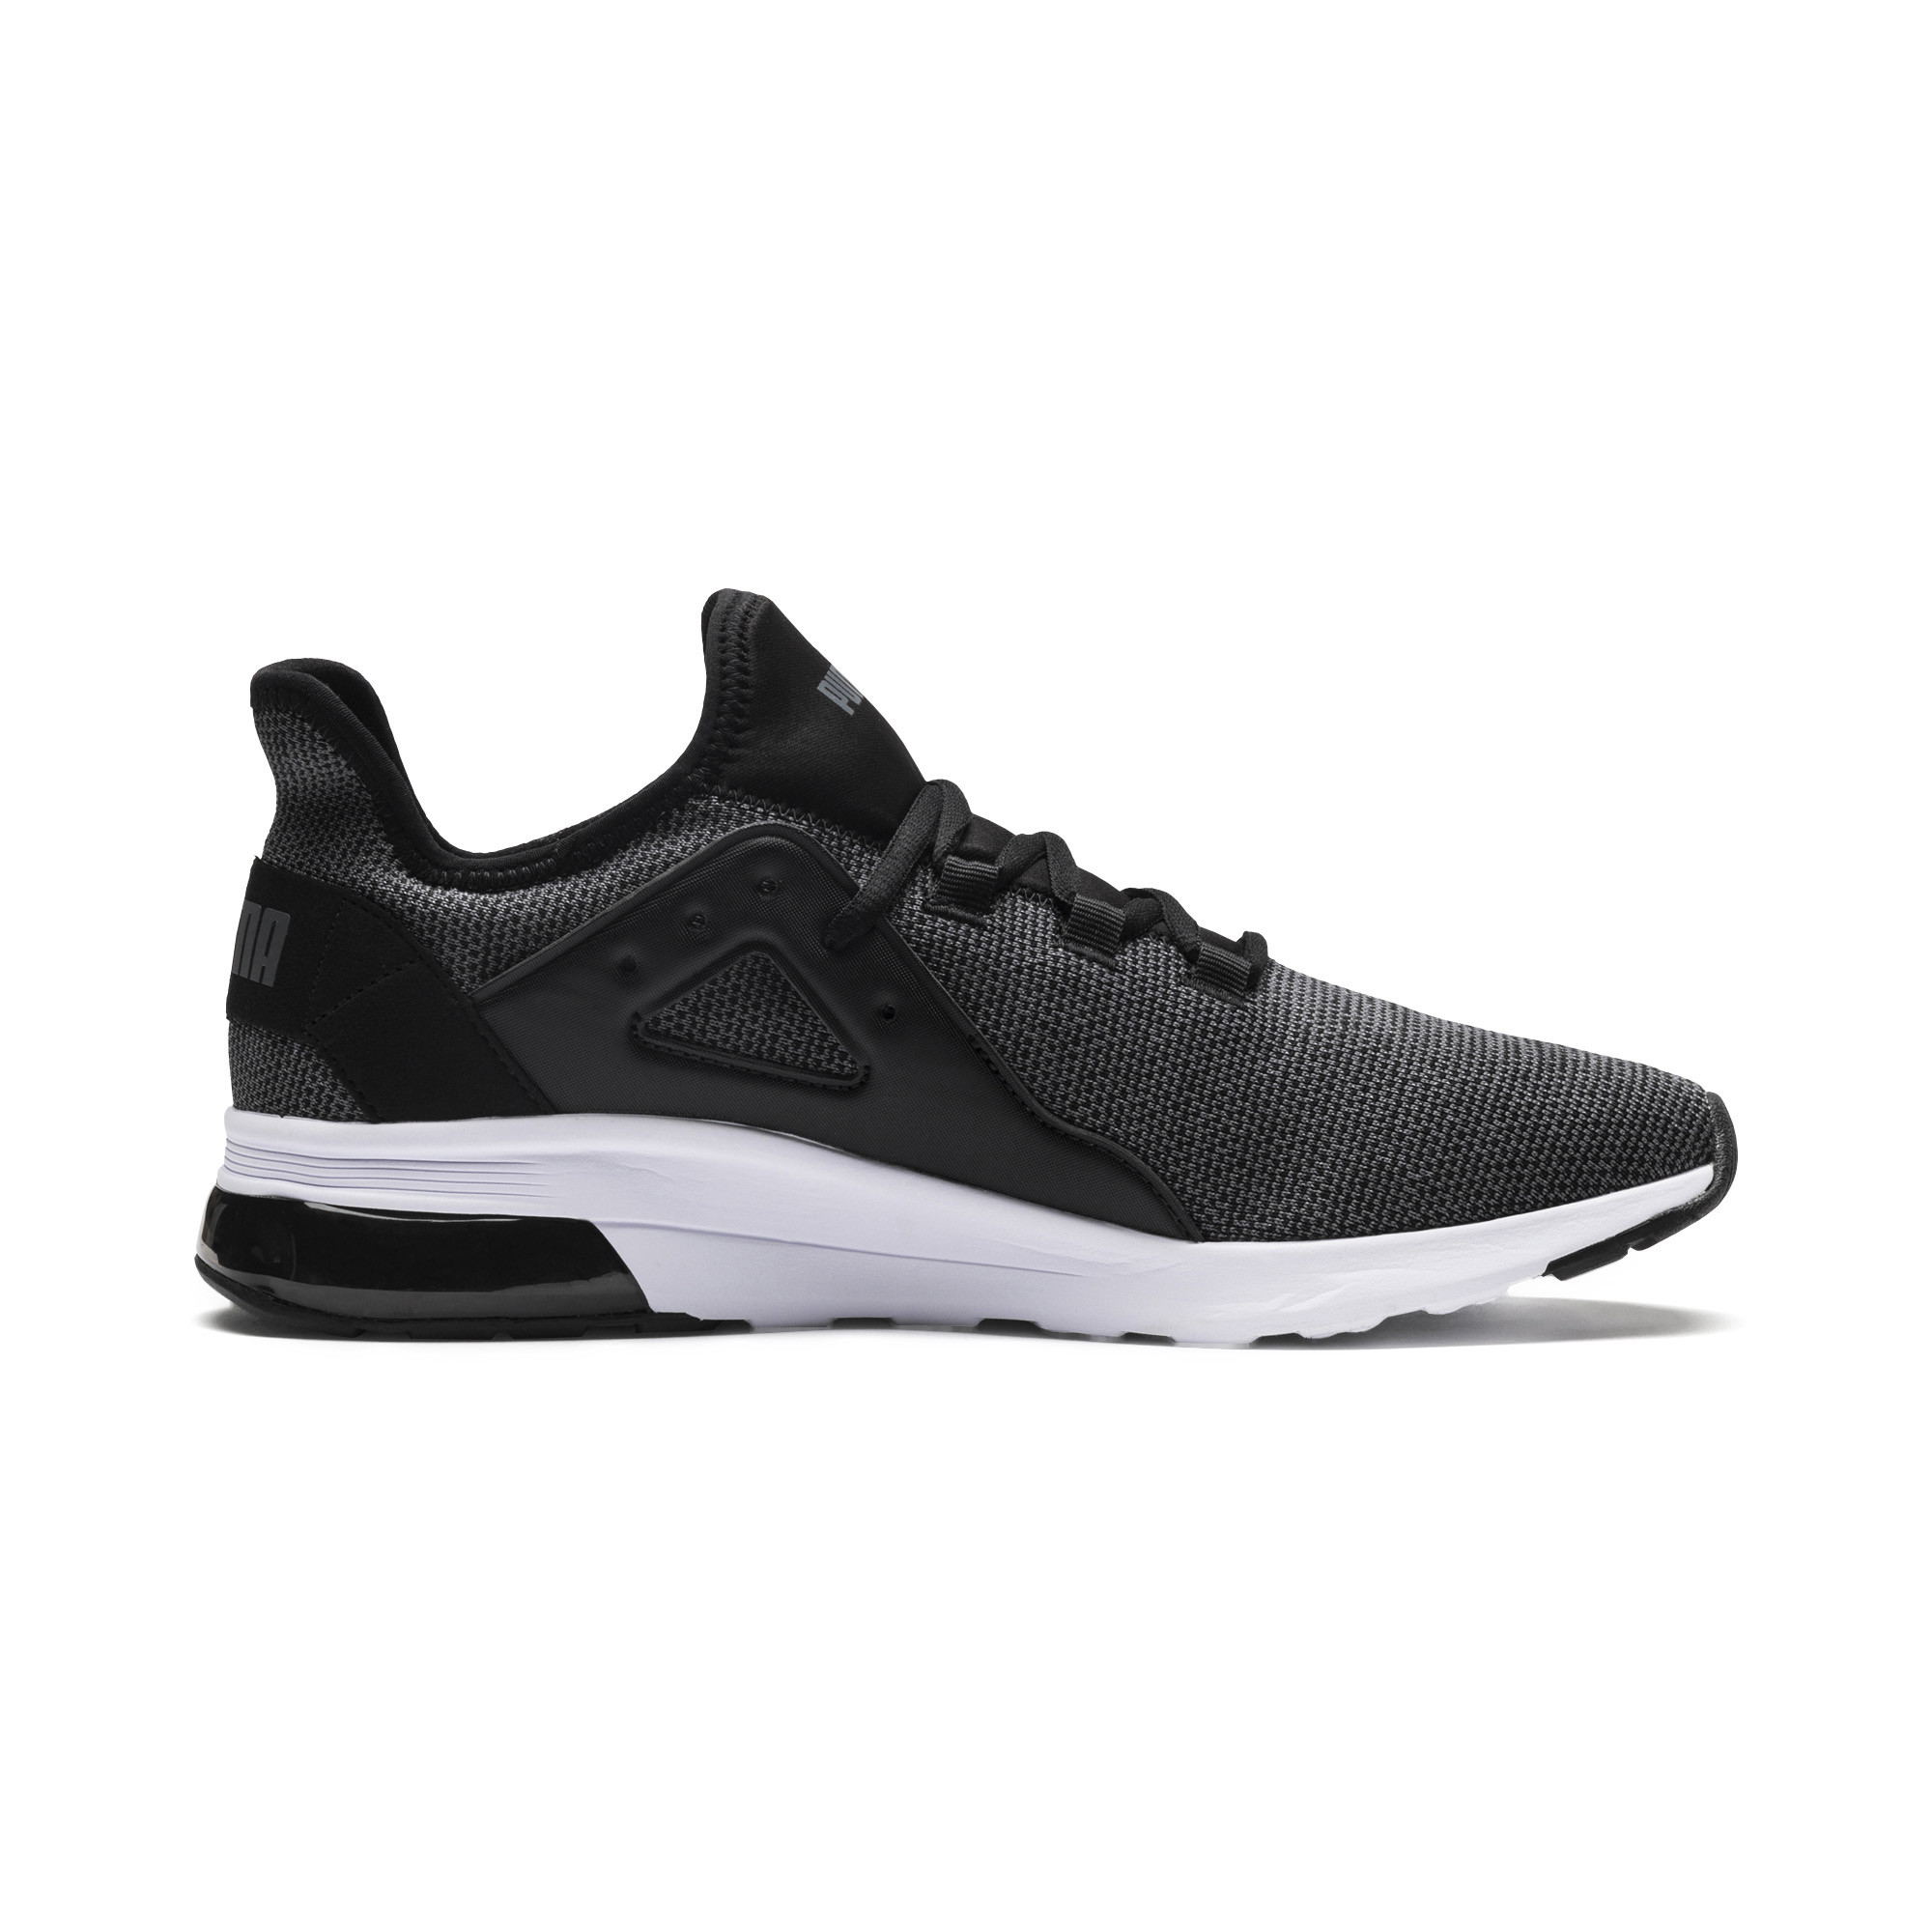 Details about PUMA Electron Street Knit Sneakers Men Shoe Basics